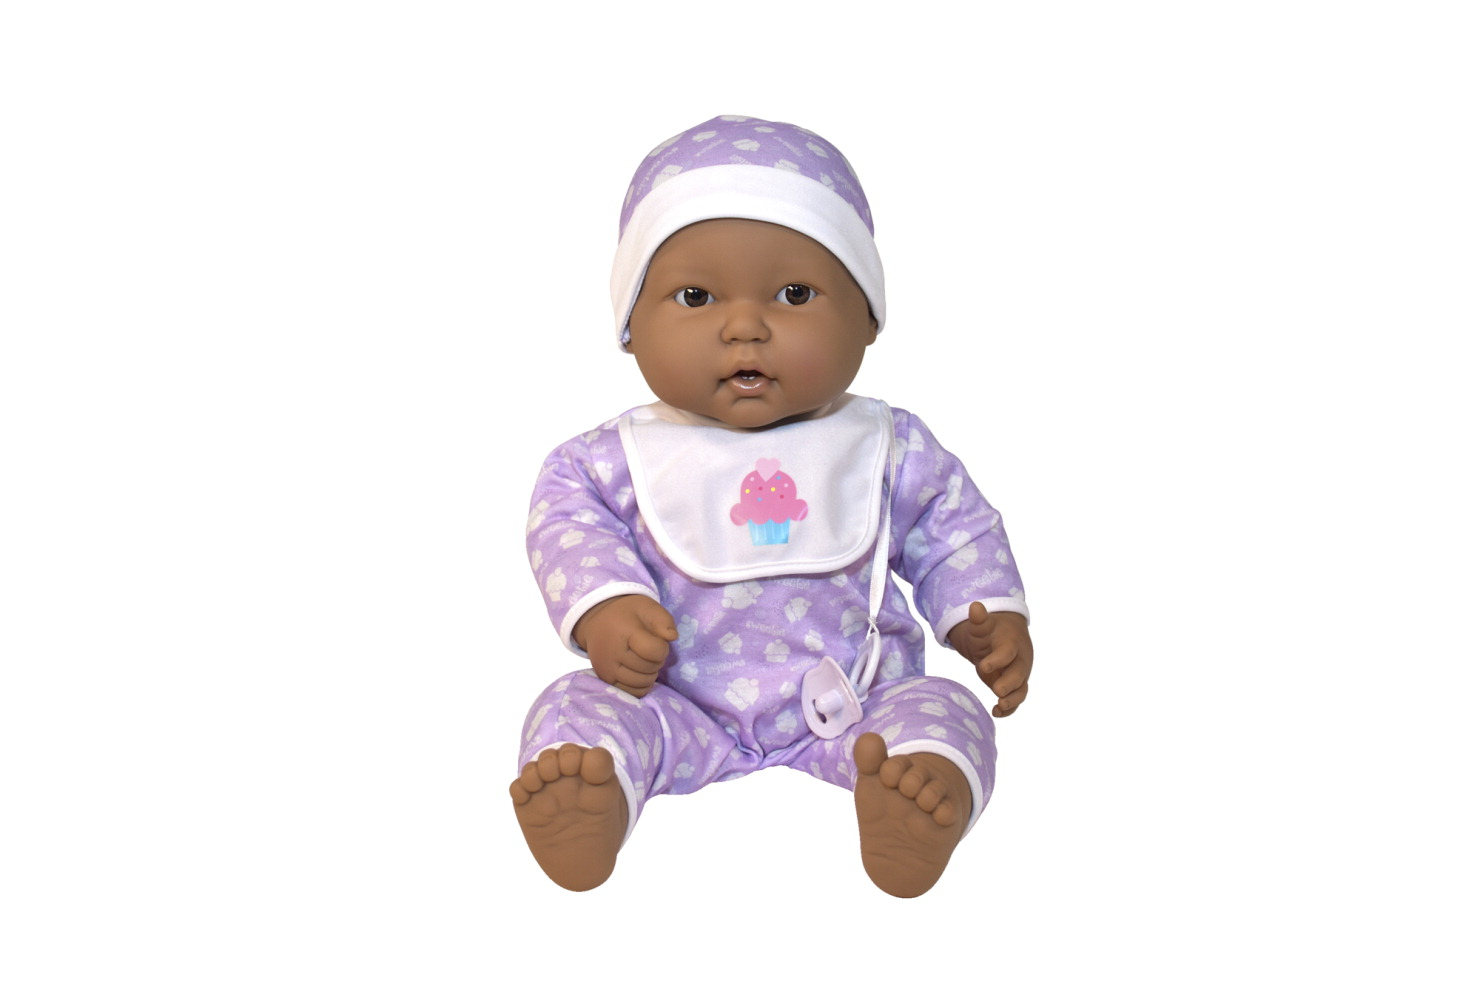 Abilitations Weighted Doll, Hispanic Ethnicity, 4 Pounds